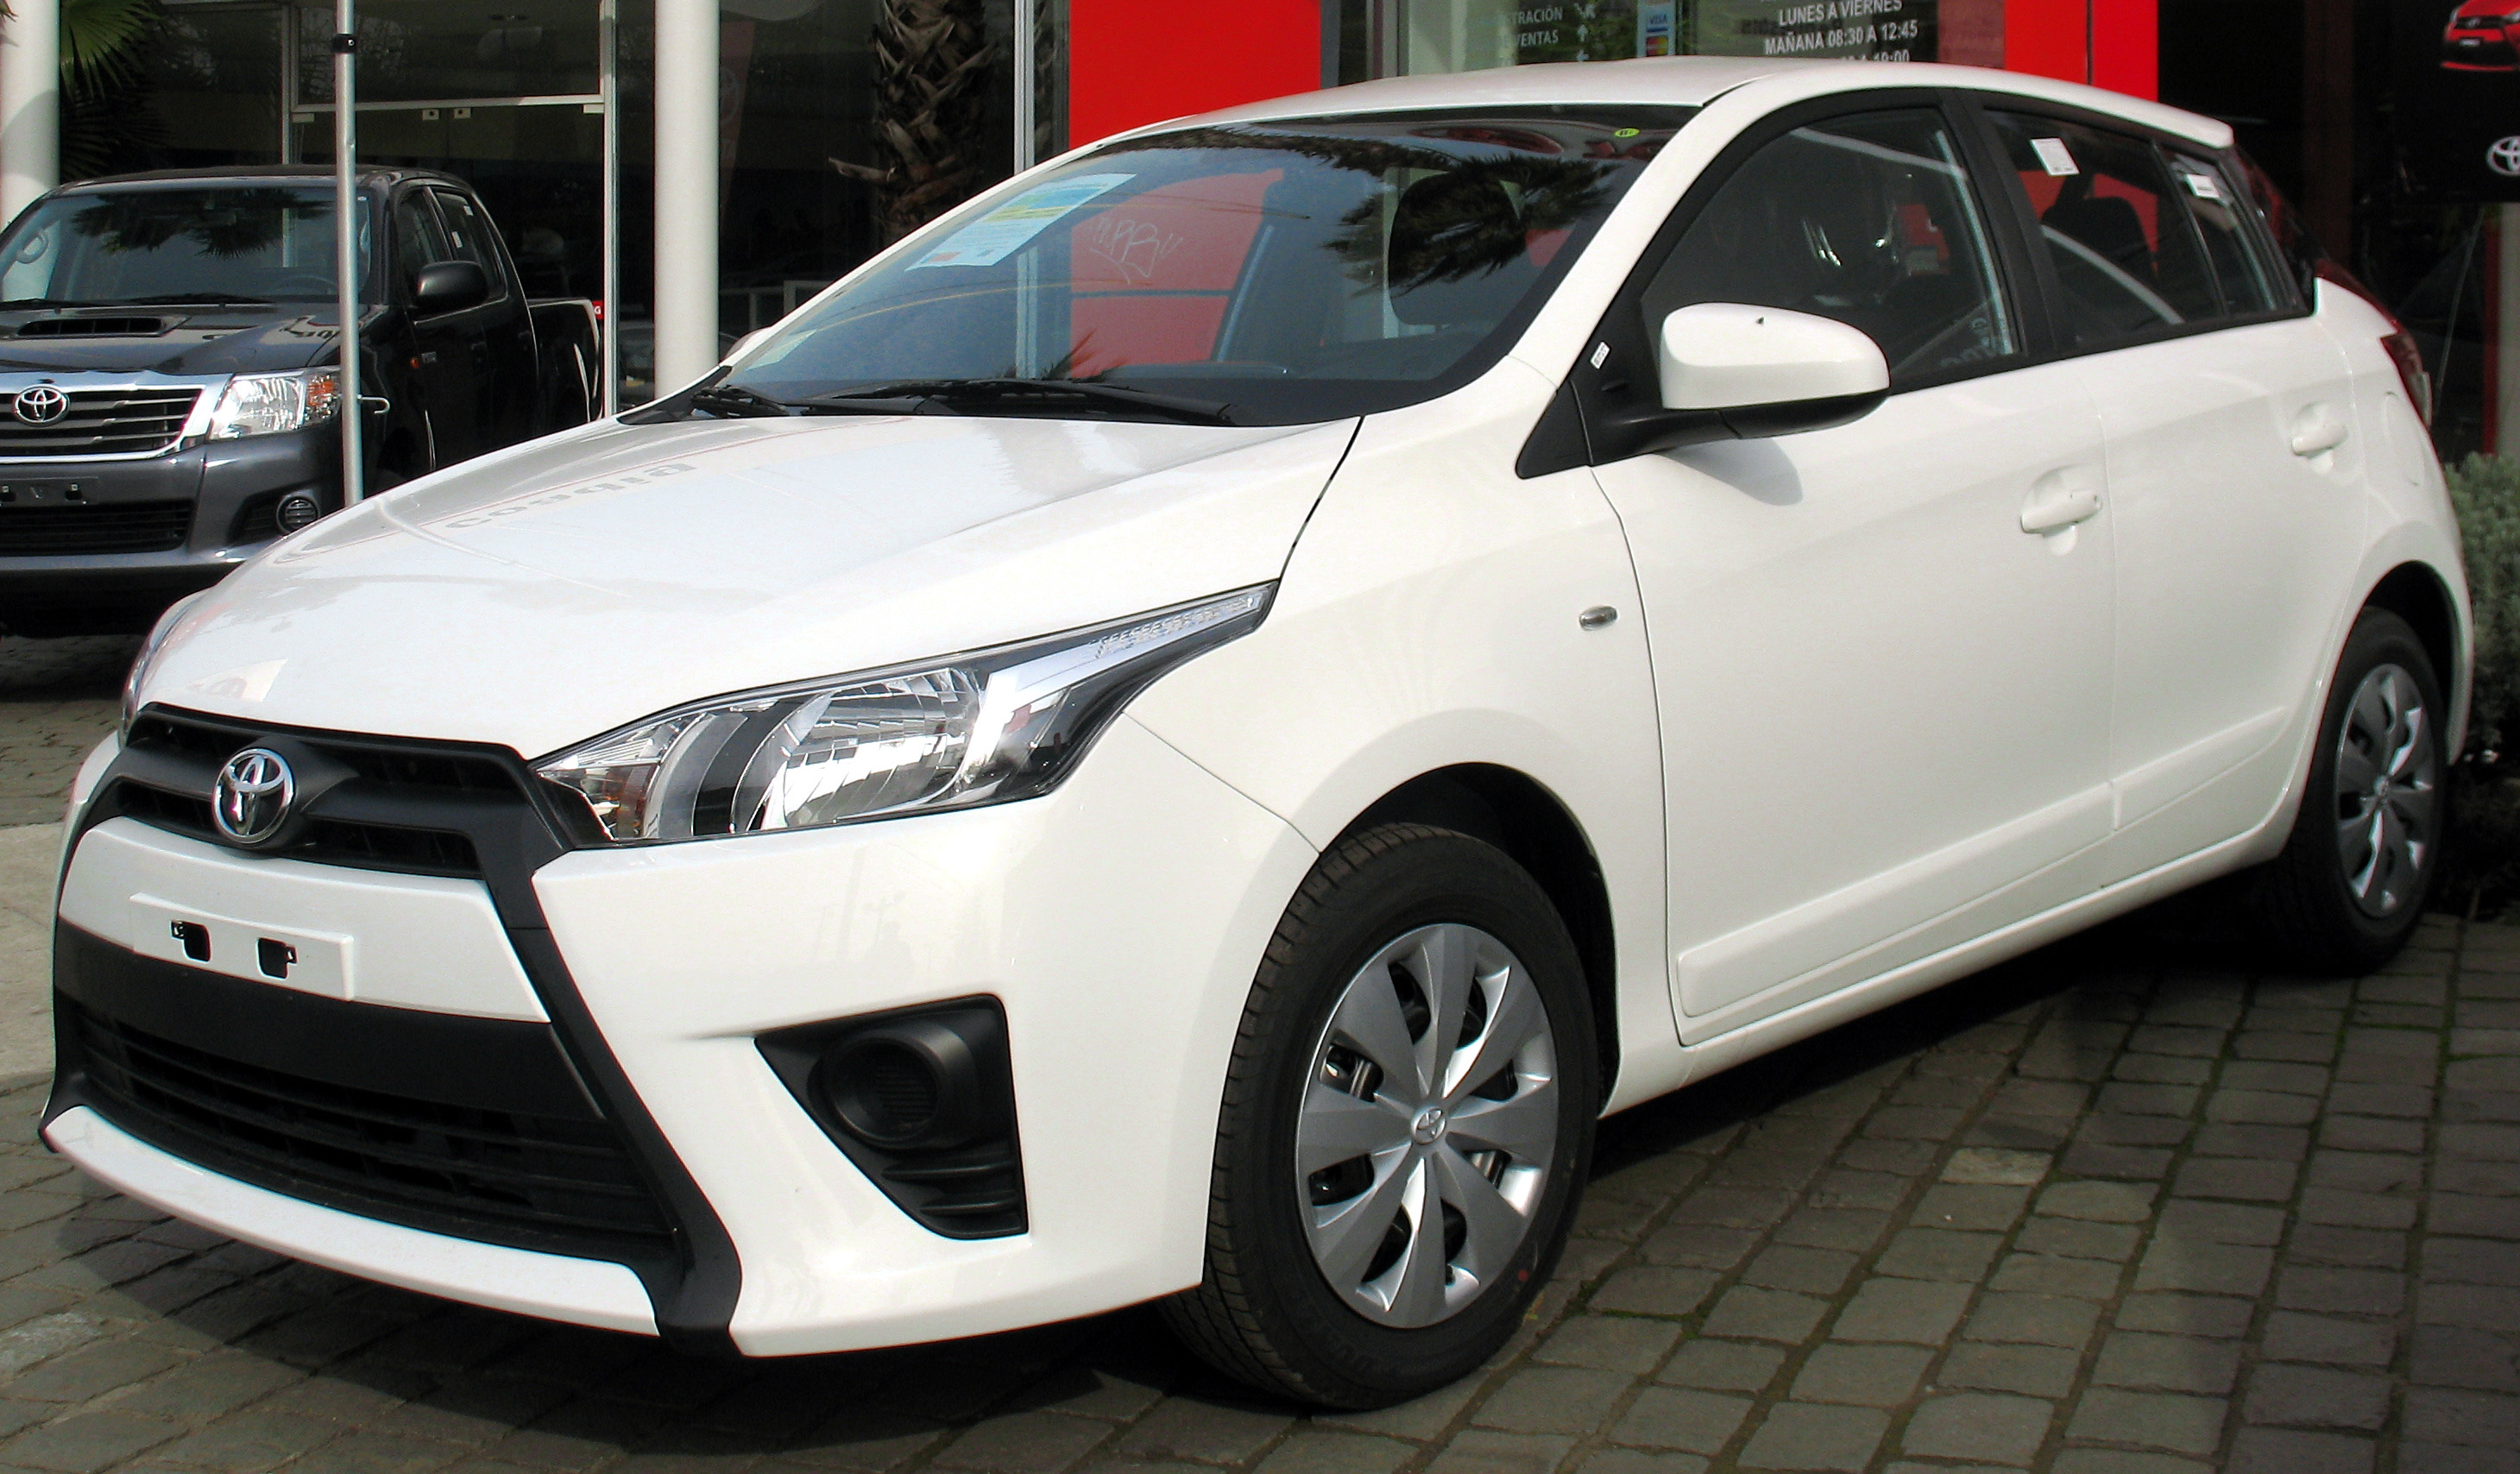 7 Things You Will Love About The Latest Toyota Yaris